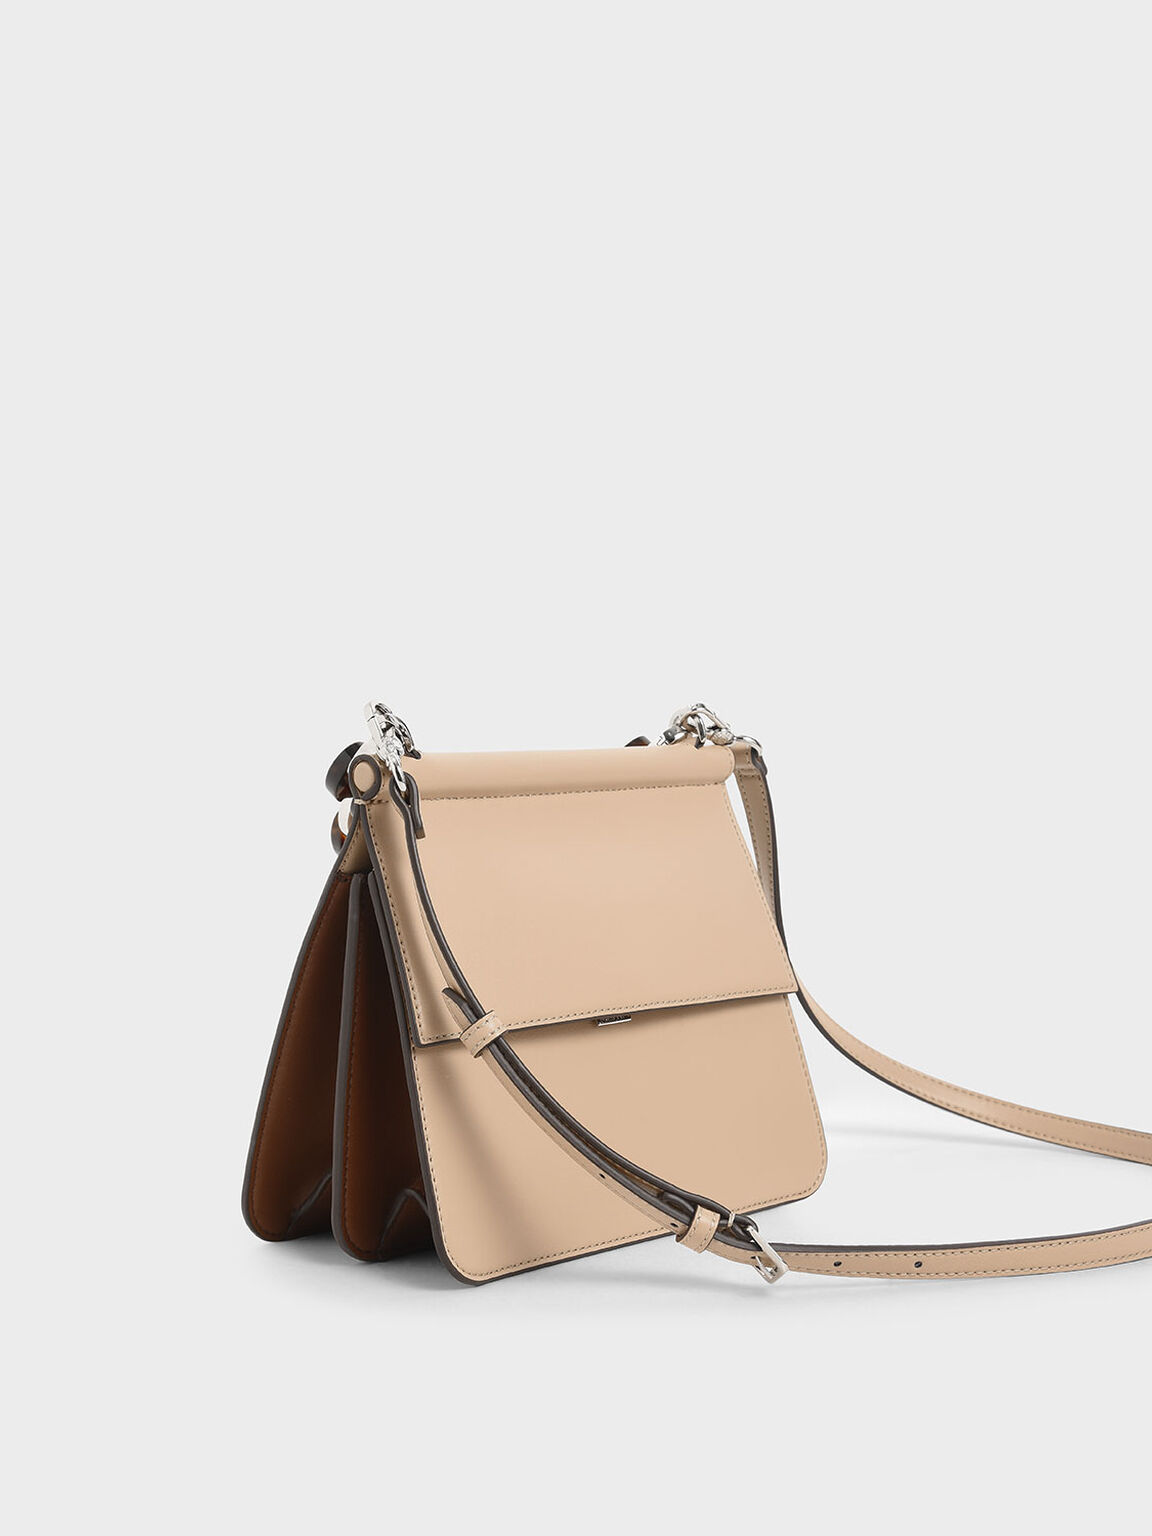 Acrylic Tortoiseshell Top Handle Bag, Beige, hi-res